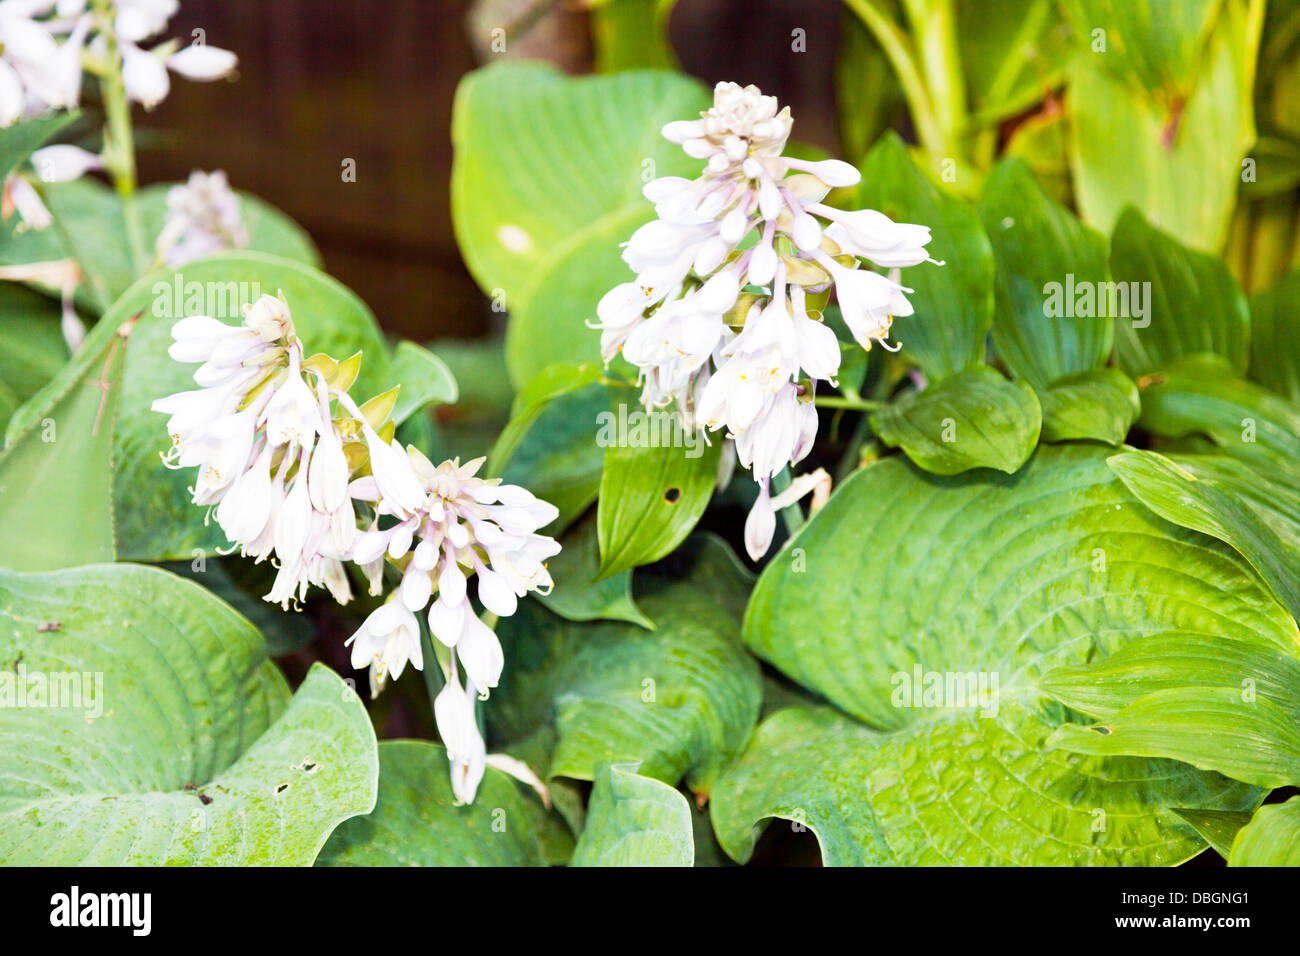 Typical English Garden Plants Flowers Close Detail Of Hosta Plant